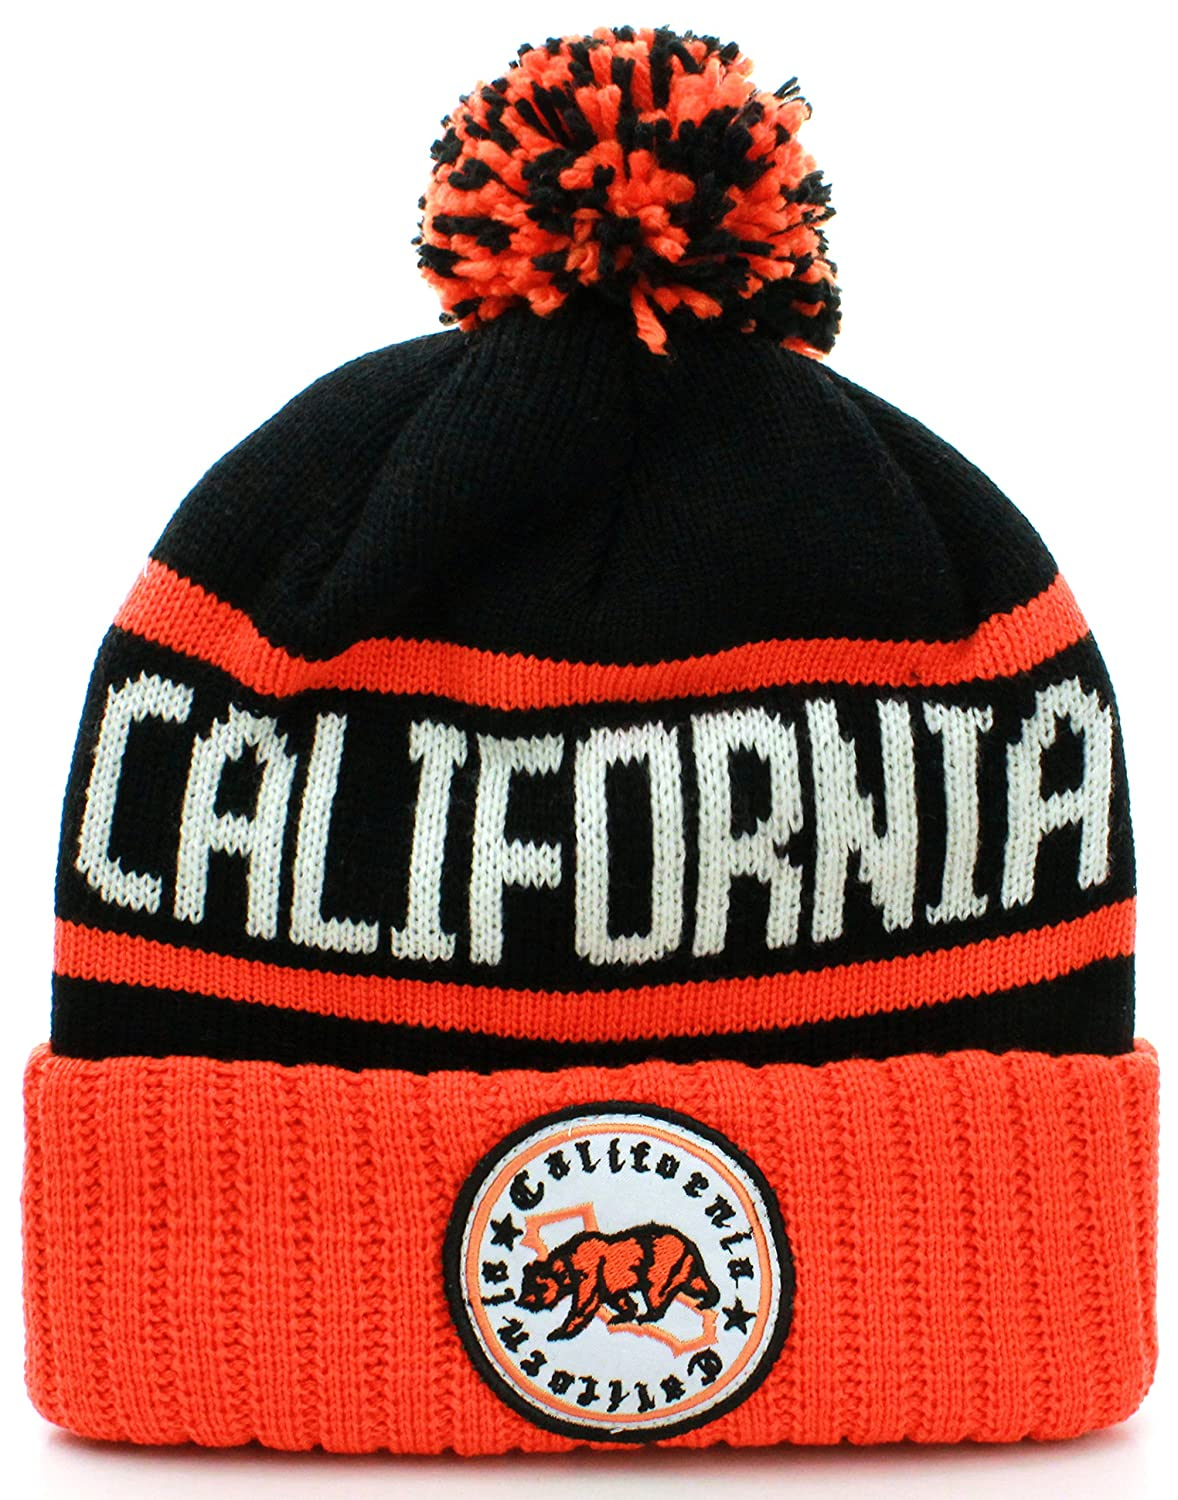 0efdb5191d8 Absolute Clothing California Republic Cuff Beanie Cable Knit Pom Pom Hat Cap  at Amazon Men s Clothing store